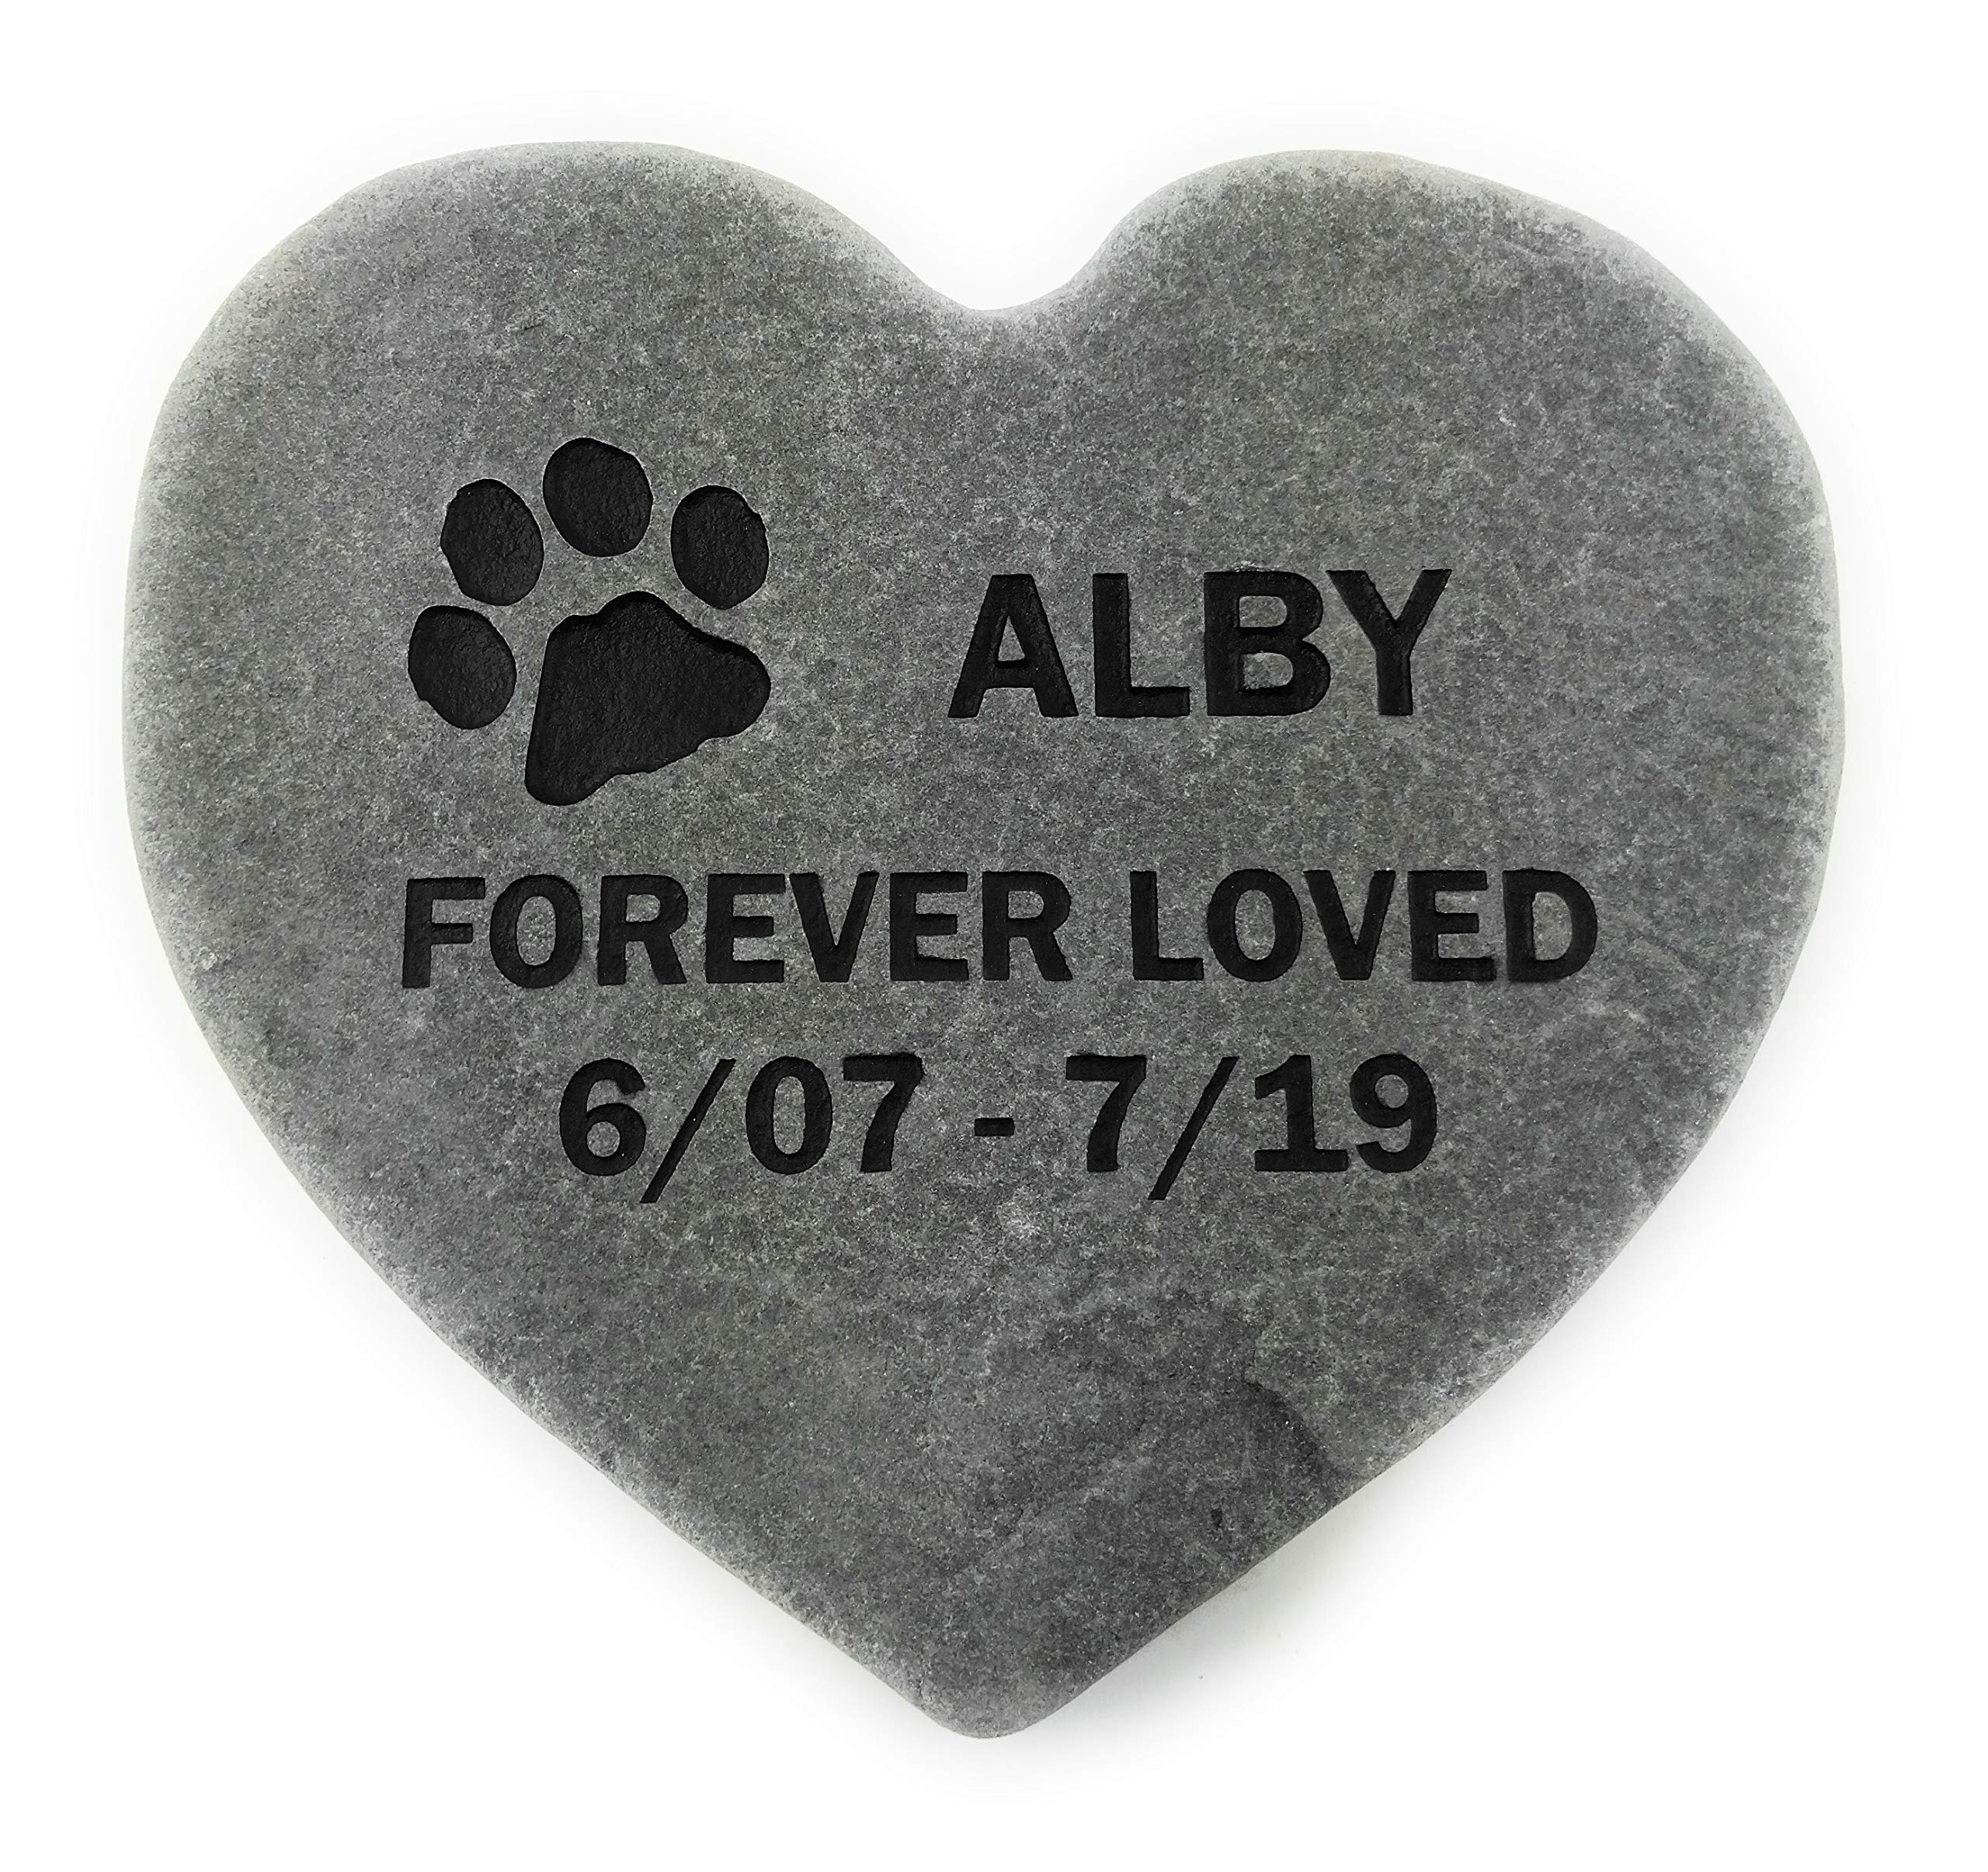 GraphicRocks Pet Memorial Headstone Grave Marker Gray Natural Stone Heart 8'' for Your Dog Or Cat Personalized by GraphicRocks